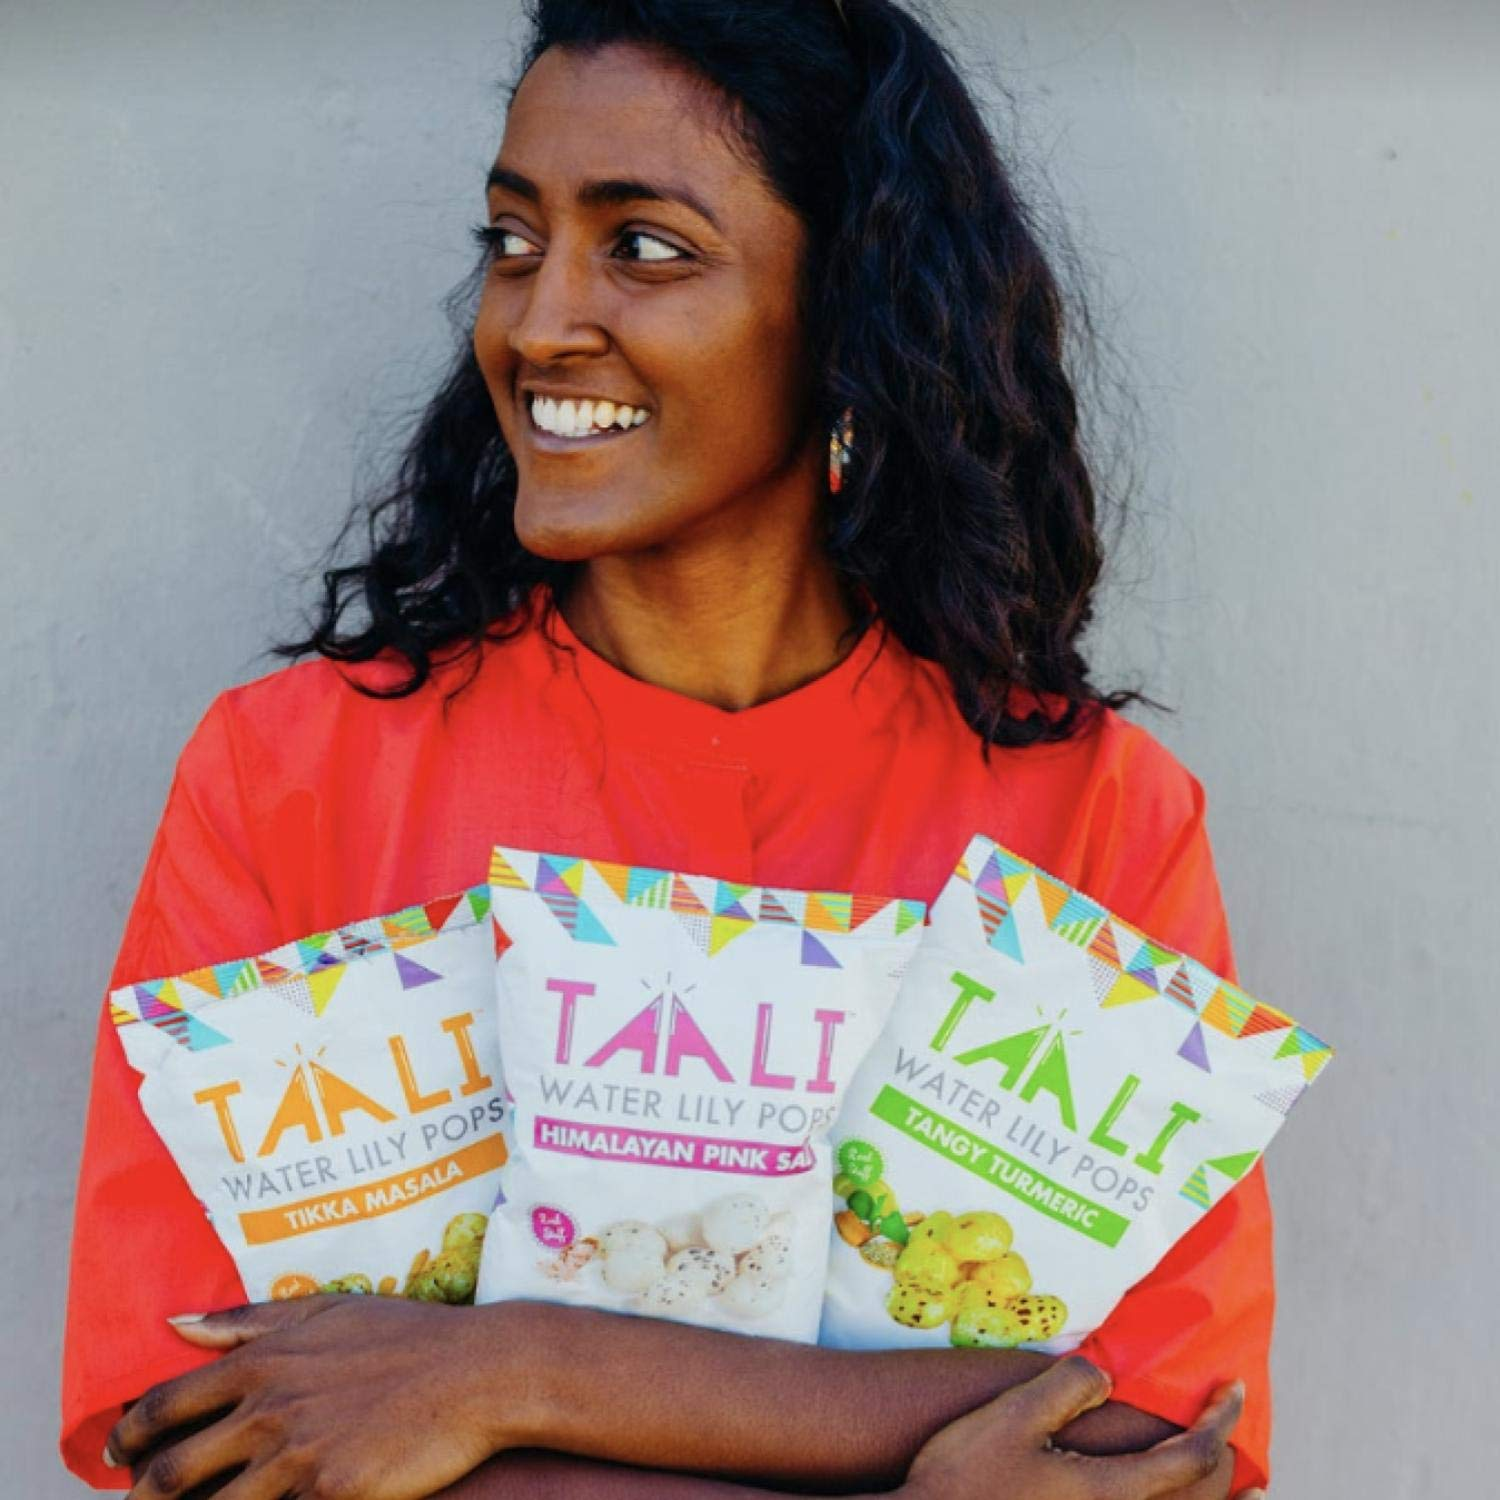 Taali Variety Pack Water Lily Pops (4-Pack) - Four Delicious Flavors. Now with Sriracha! | Protein-Rich Roasted Snack | Non GMO Verified - 2.3 oz Multi-Serve Bags by Taali (Image #6)